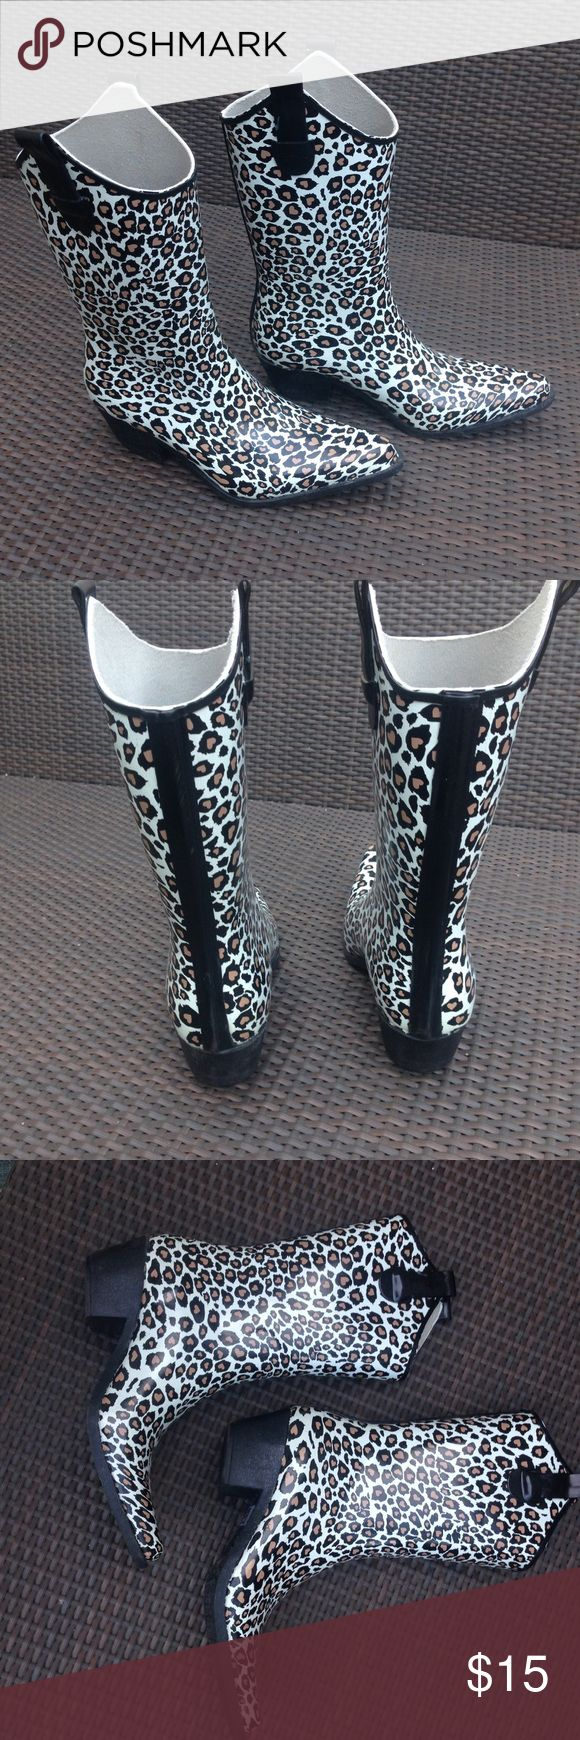 Daily Shoes Leopard Cowboy Rain Boot Daily Shoes Cowboy Tight Leopard Print Rain Boots. Size 9. All rubber rain boots.  Slip on.  Mid knee length.  Thick rubber heel.  Man made material. EUC excellent used condition. daily shoes Shoes Winter & Rain Boots